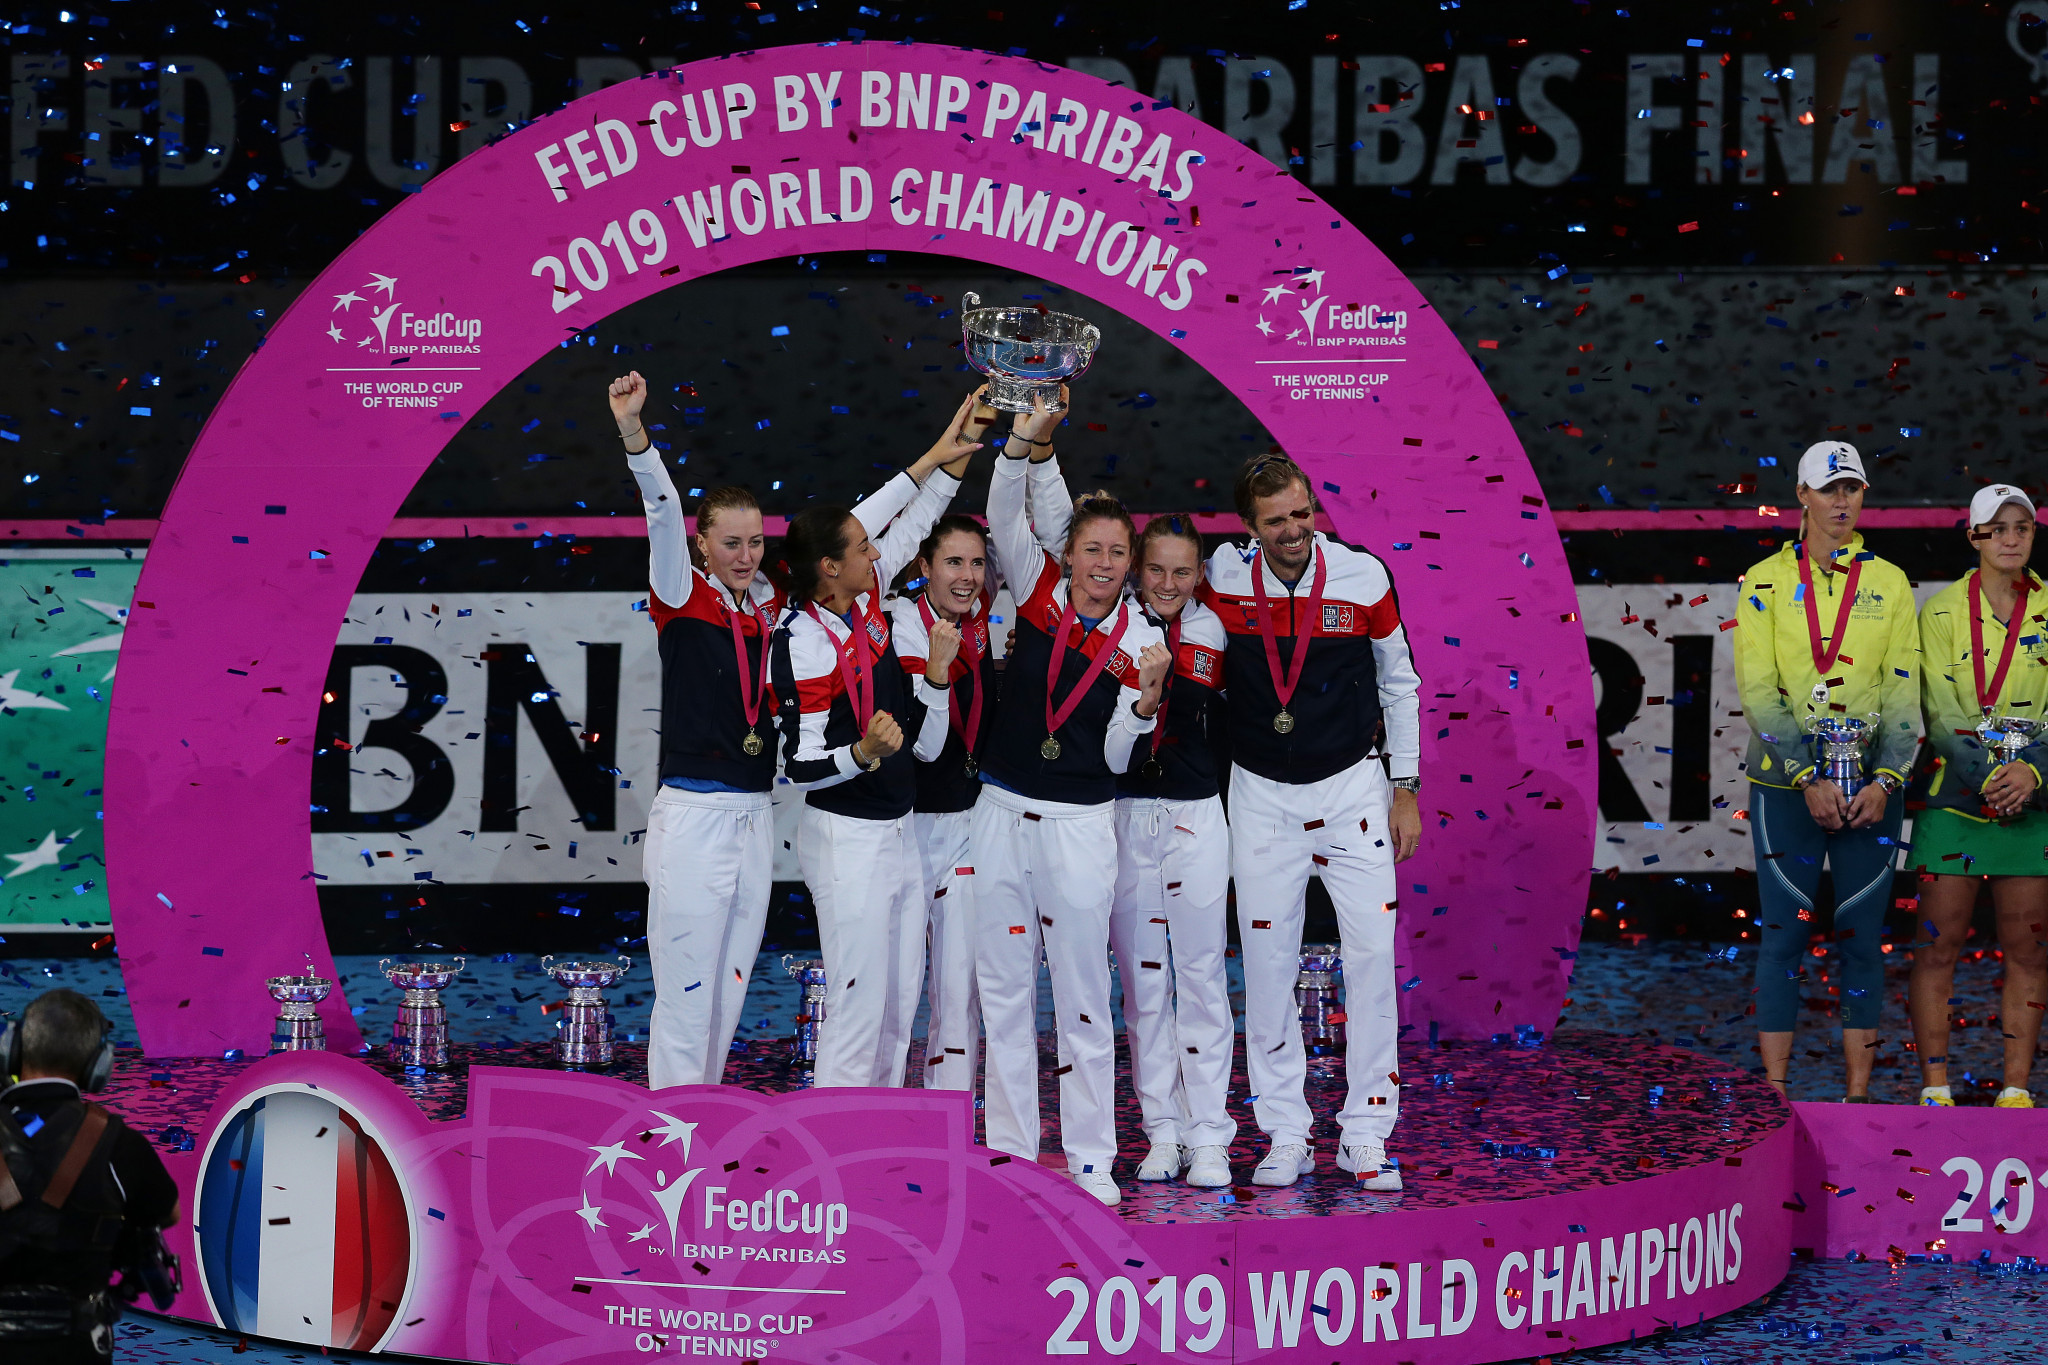 France won the 2019 Fed Cup after victory against Australia, with Kristina Mladenovic defeating Ajla Tomljanović and world number one Ashleigh Barty in both singles matches ©Getty Images